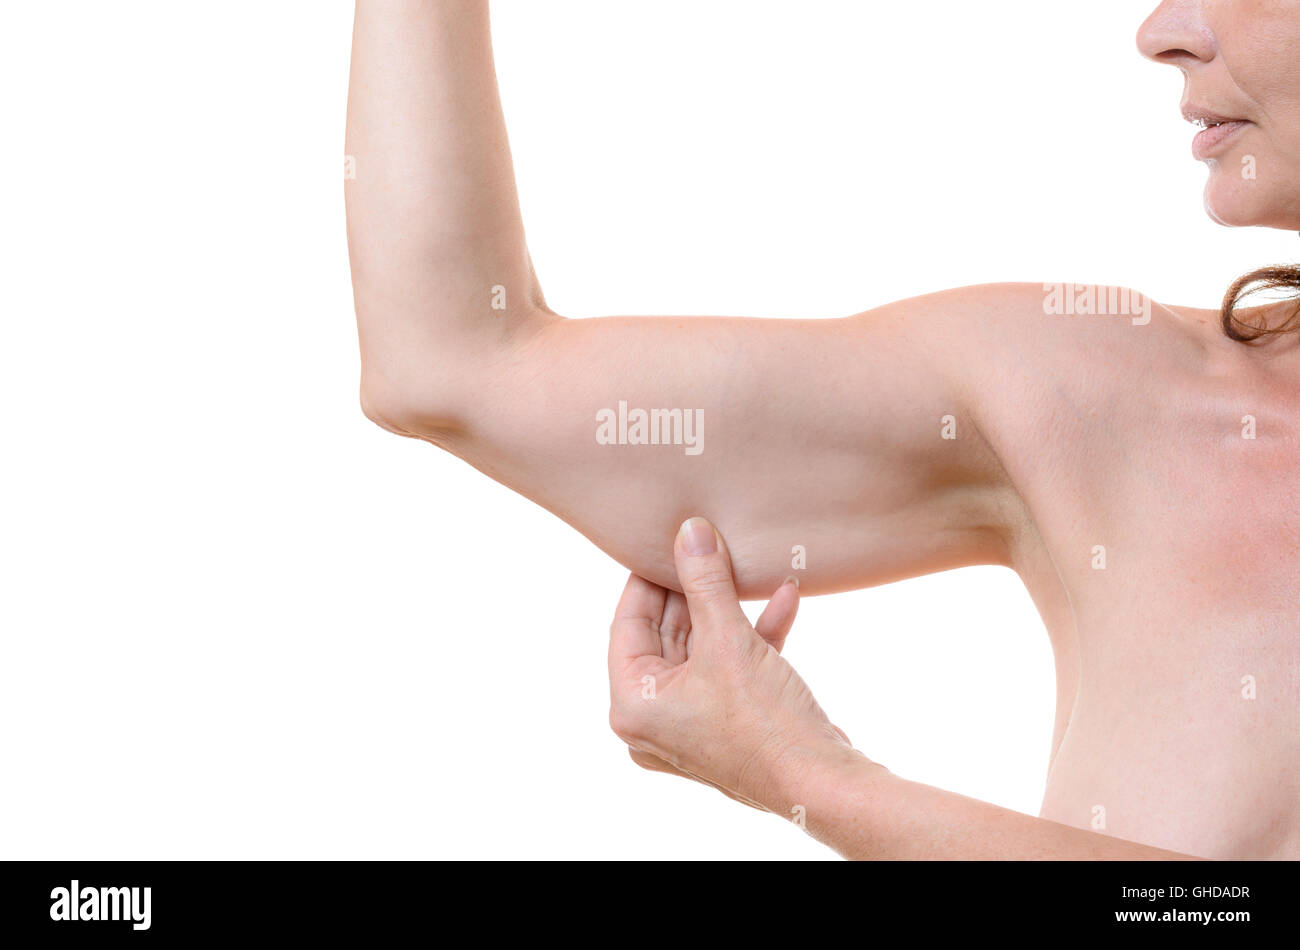 Middle-aged woman grasping her underarm flesh between her fingers showing the slackening of the tissue due to ageing, - Stock Image